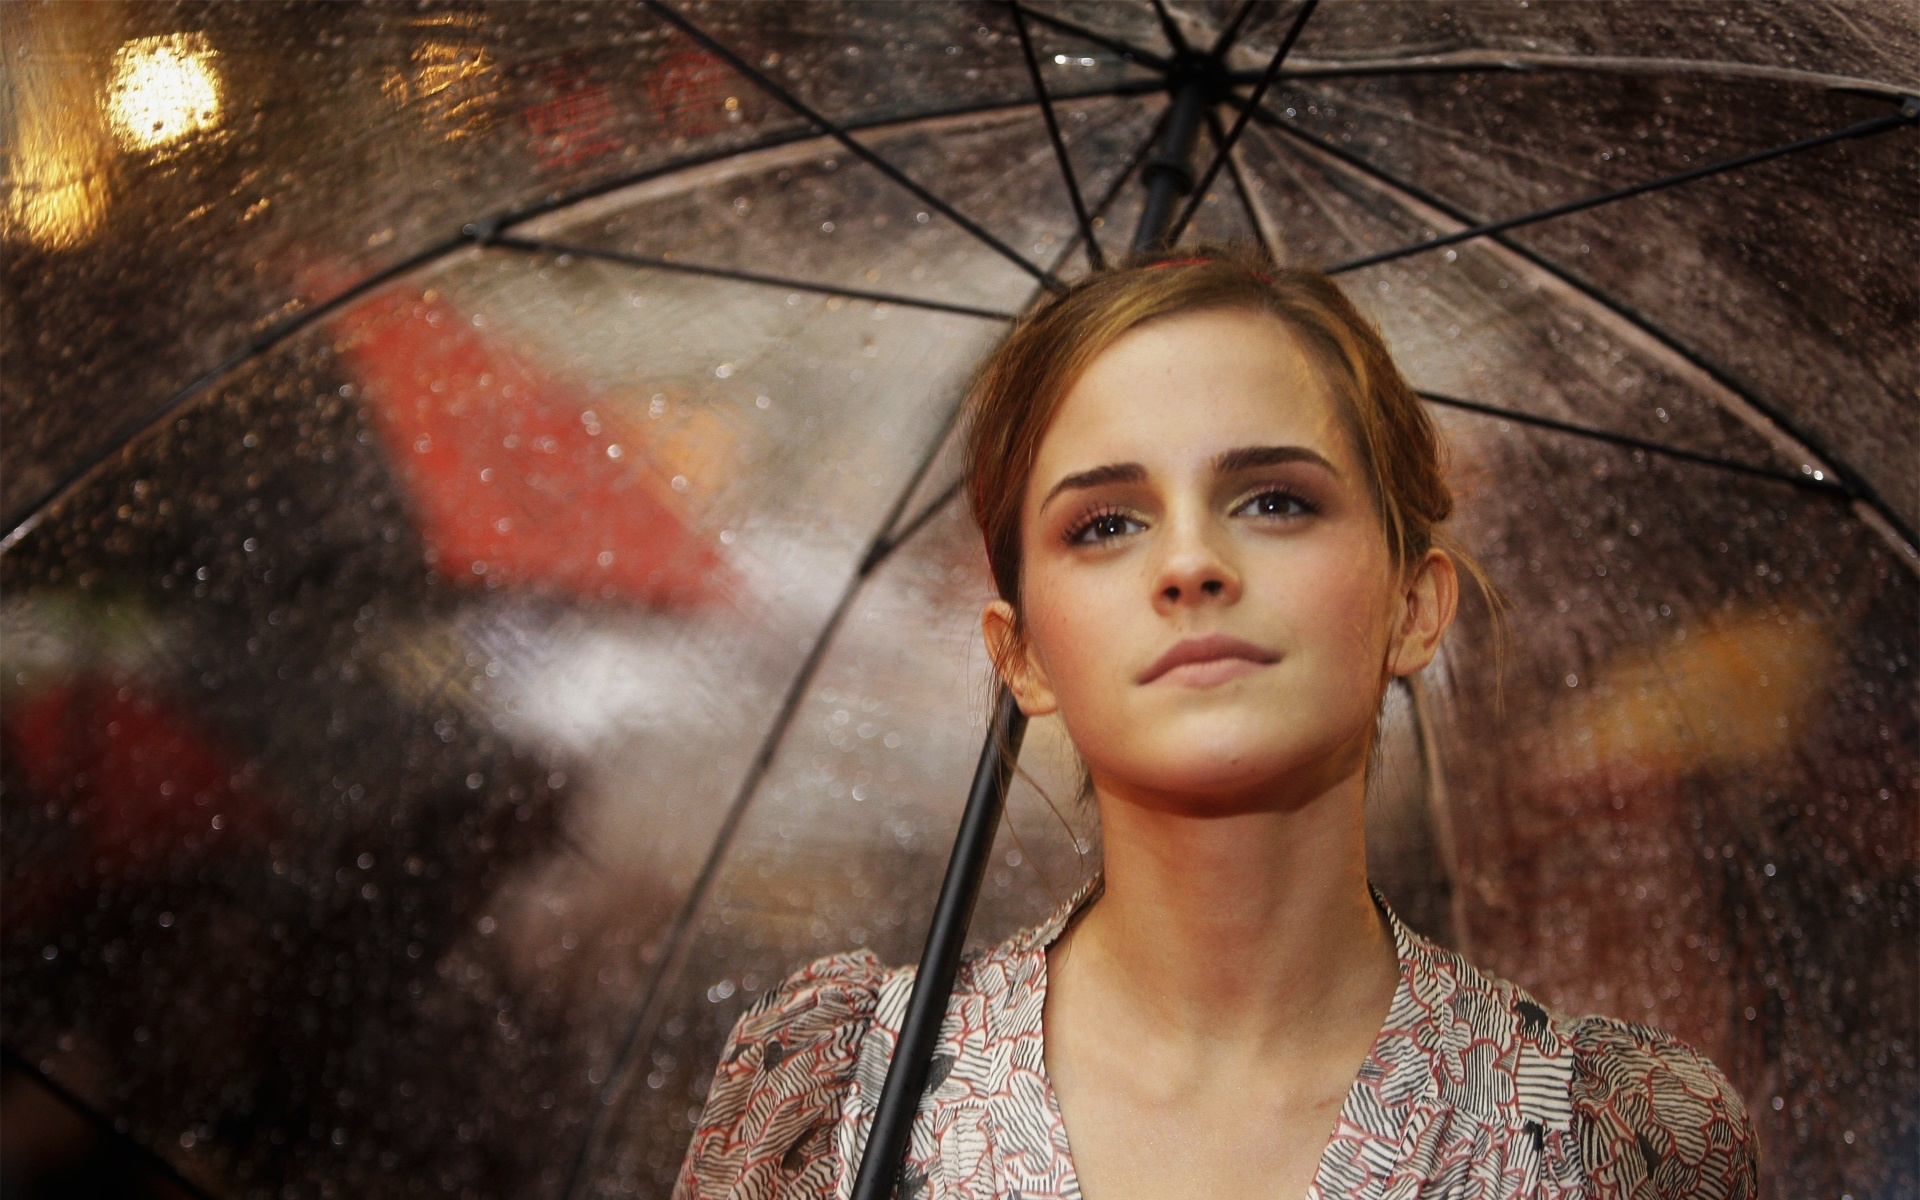 emma watson images hd a39 - hd desktop wallpapers | 4k hd